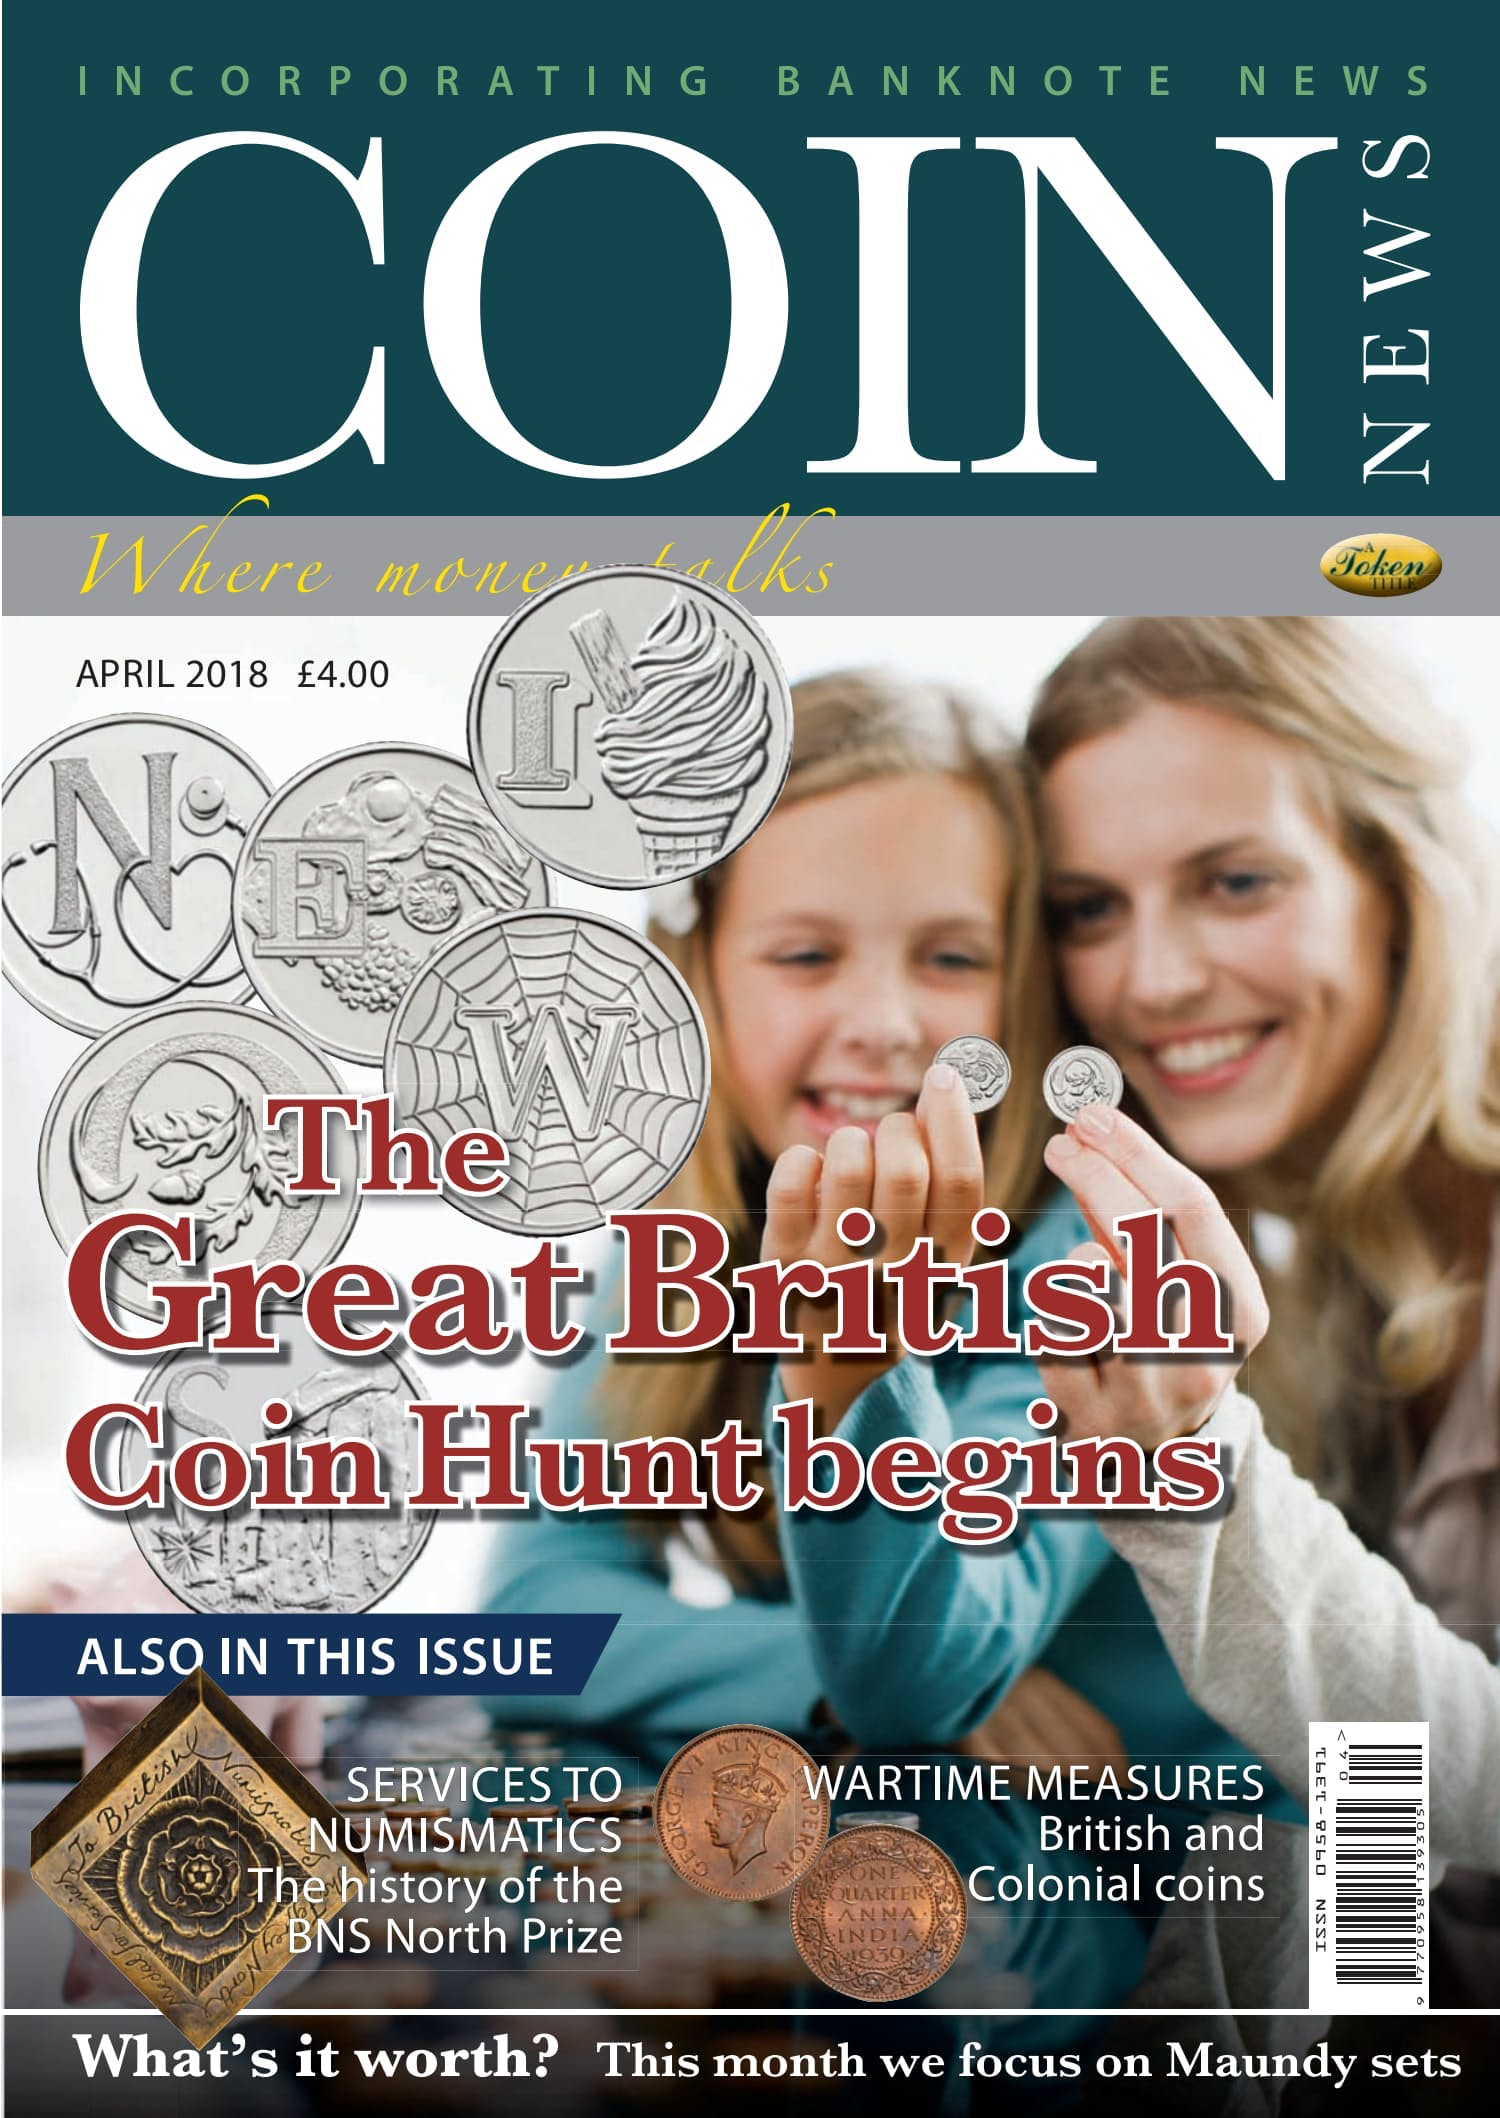 Front cover of 'The Great British Coin Hunt Begins', Coin News April 2018, Volume 55, Number 4 by Token Publishing